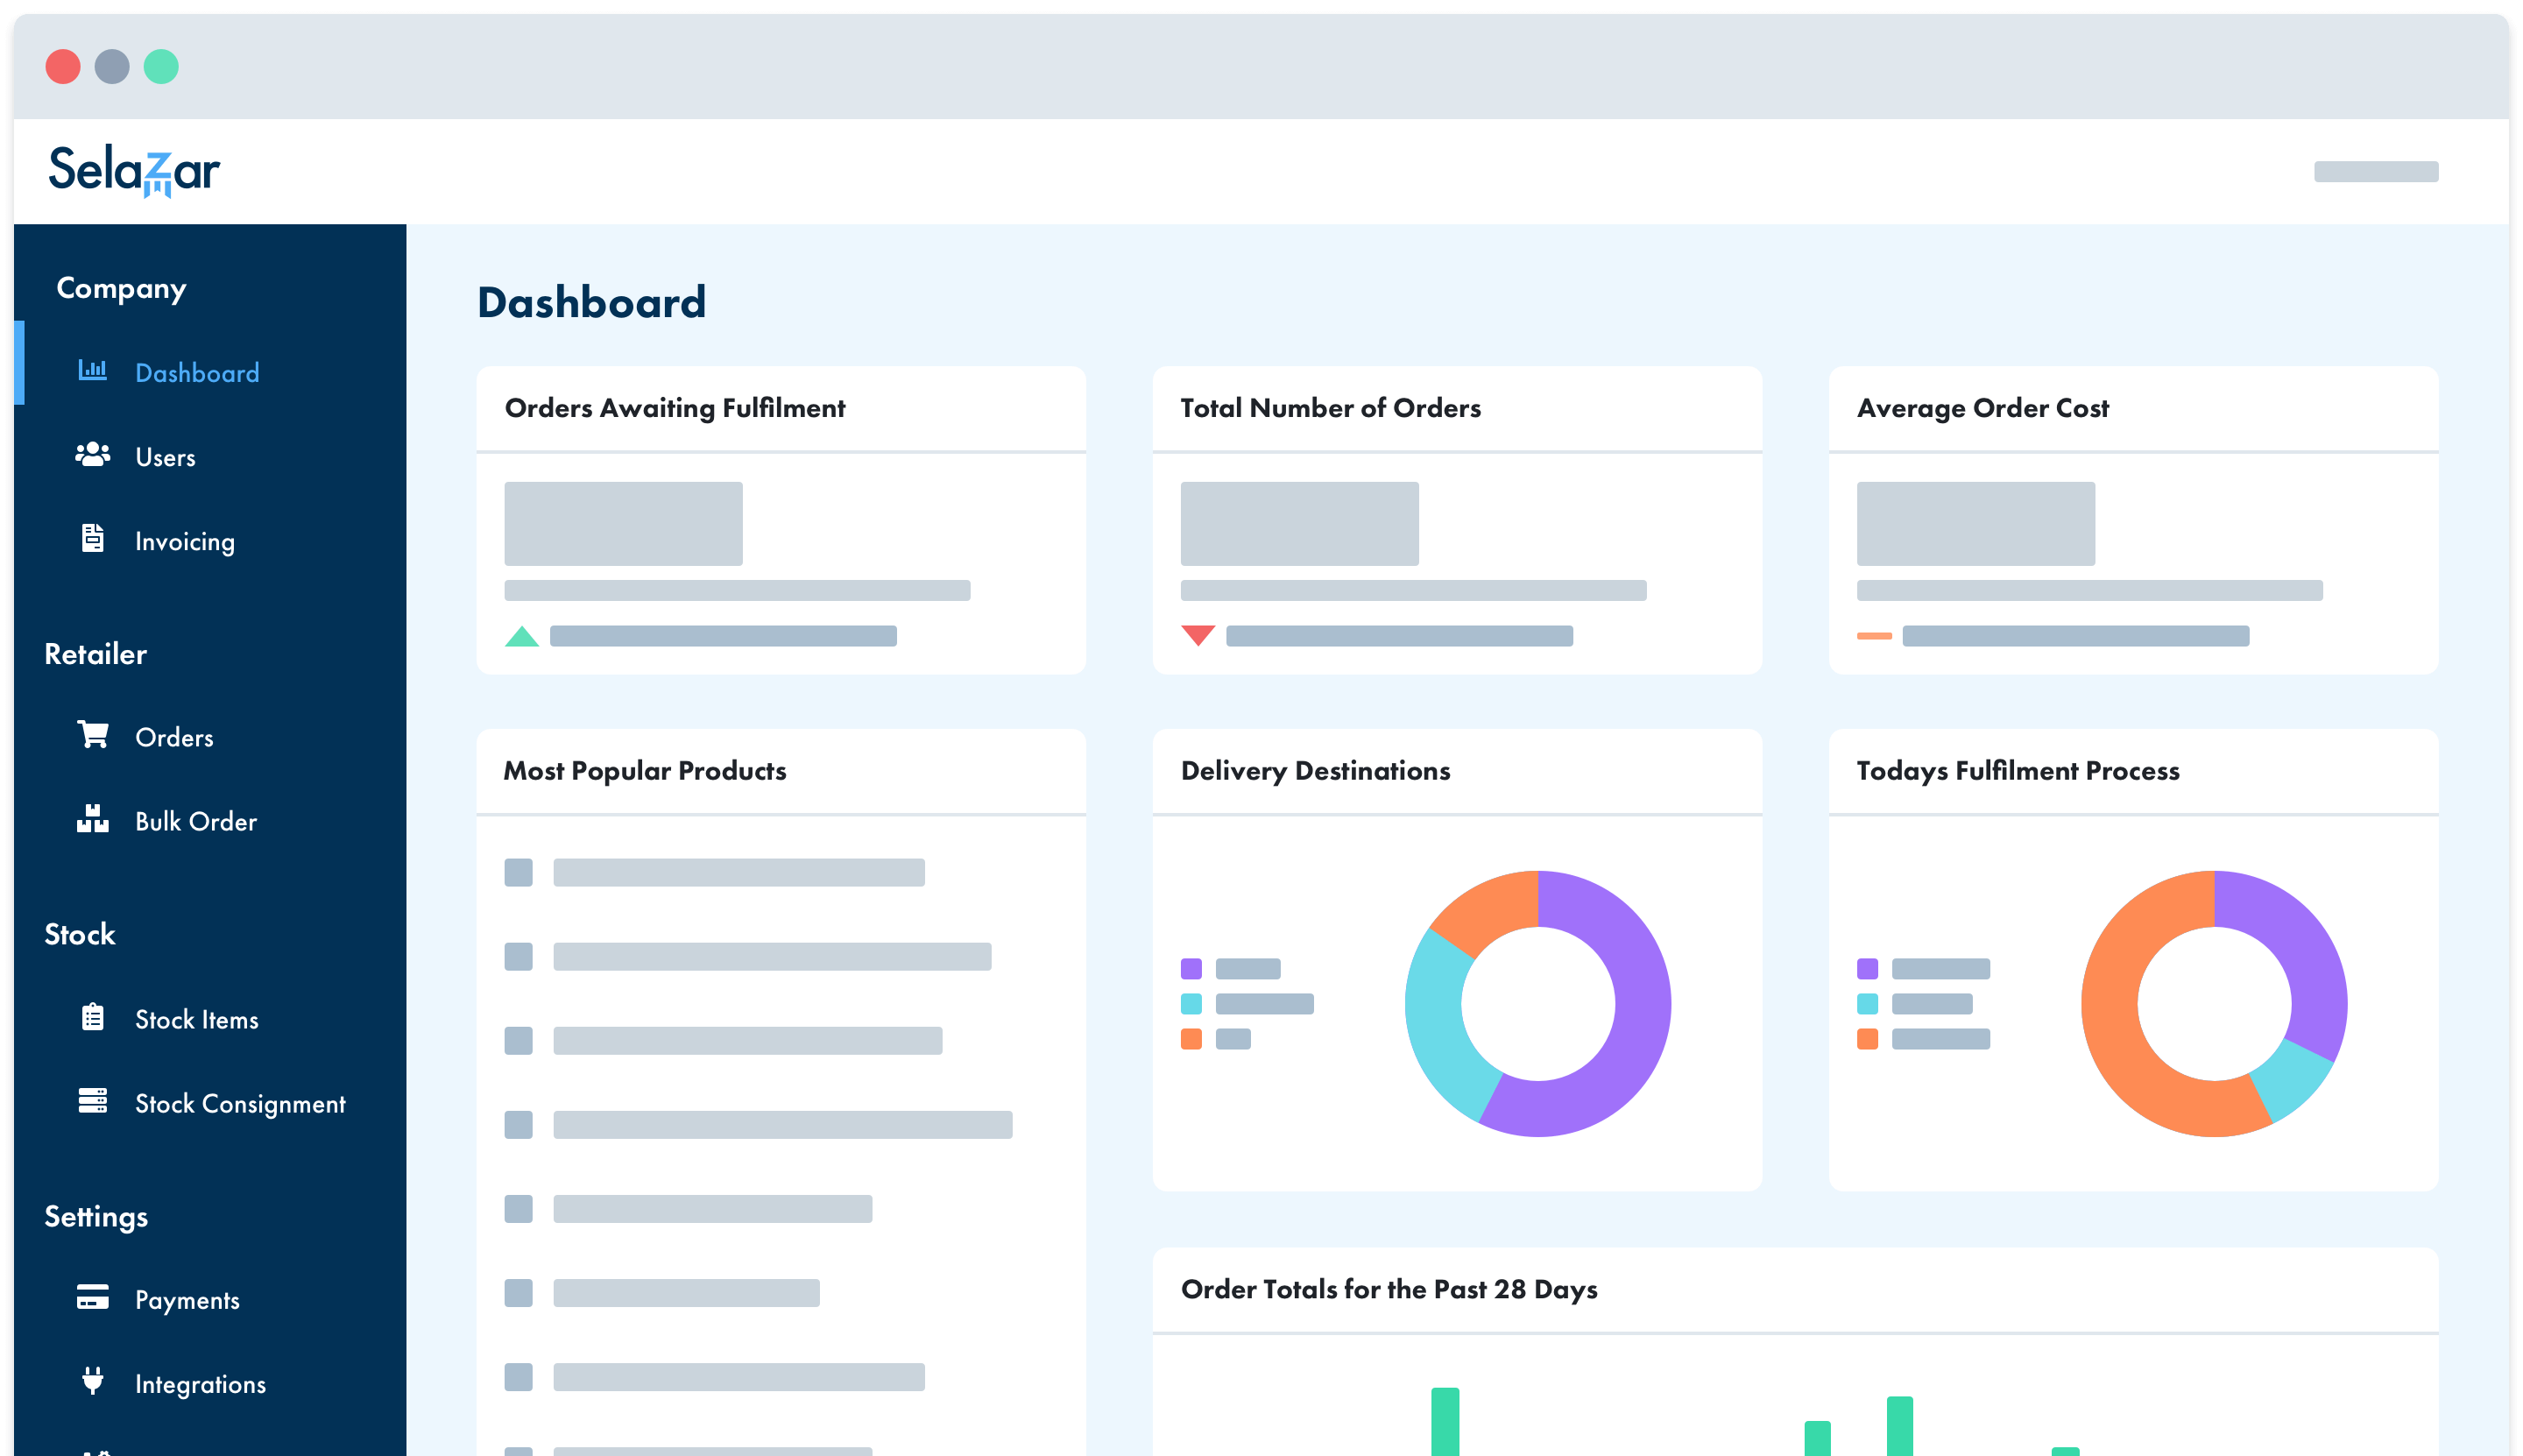 Selazar control dashboard. Easy to navigate and manage all your fulfilment operations